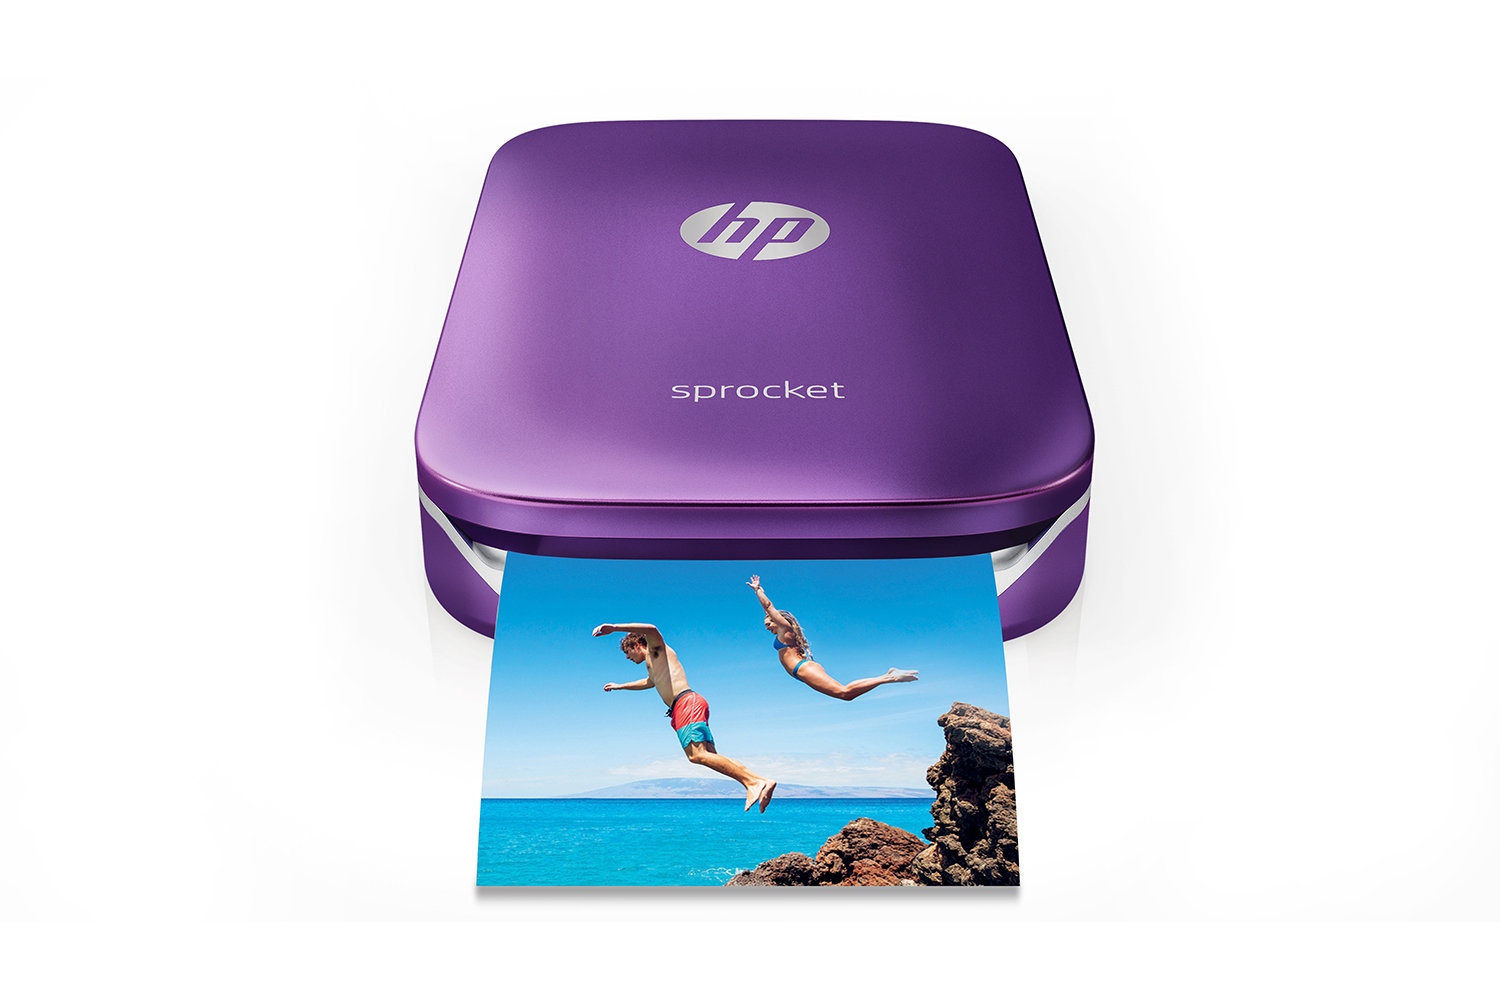 HP_Sprocket_Packaging_With_Output_Purple.jpg